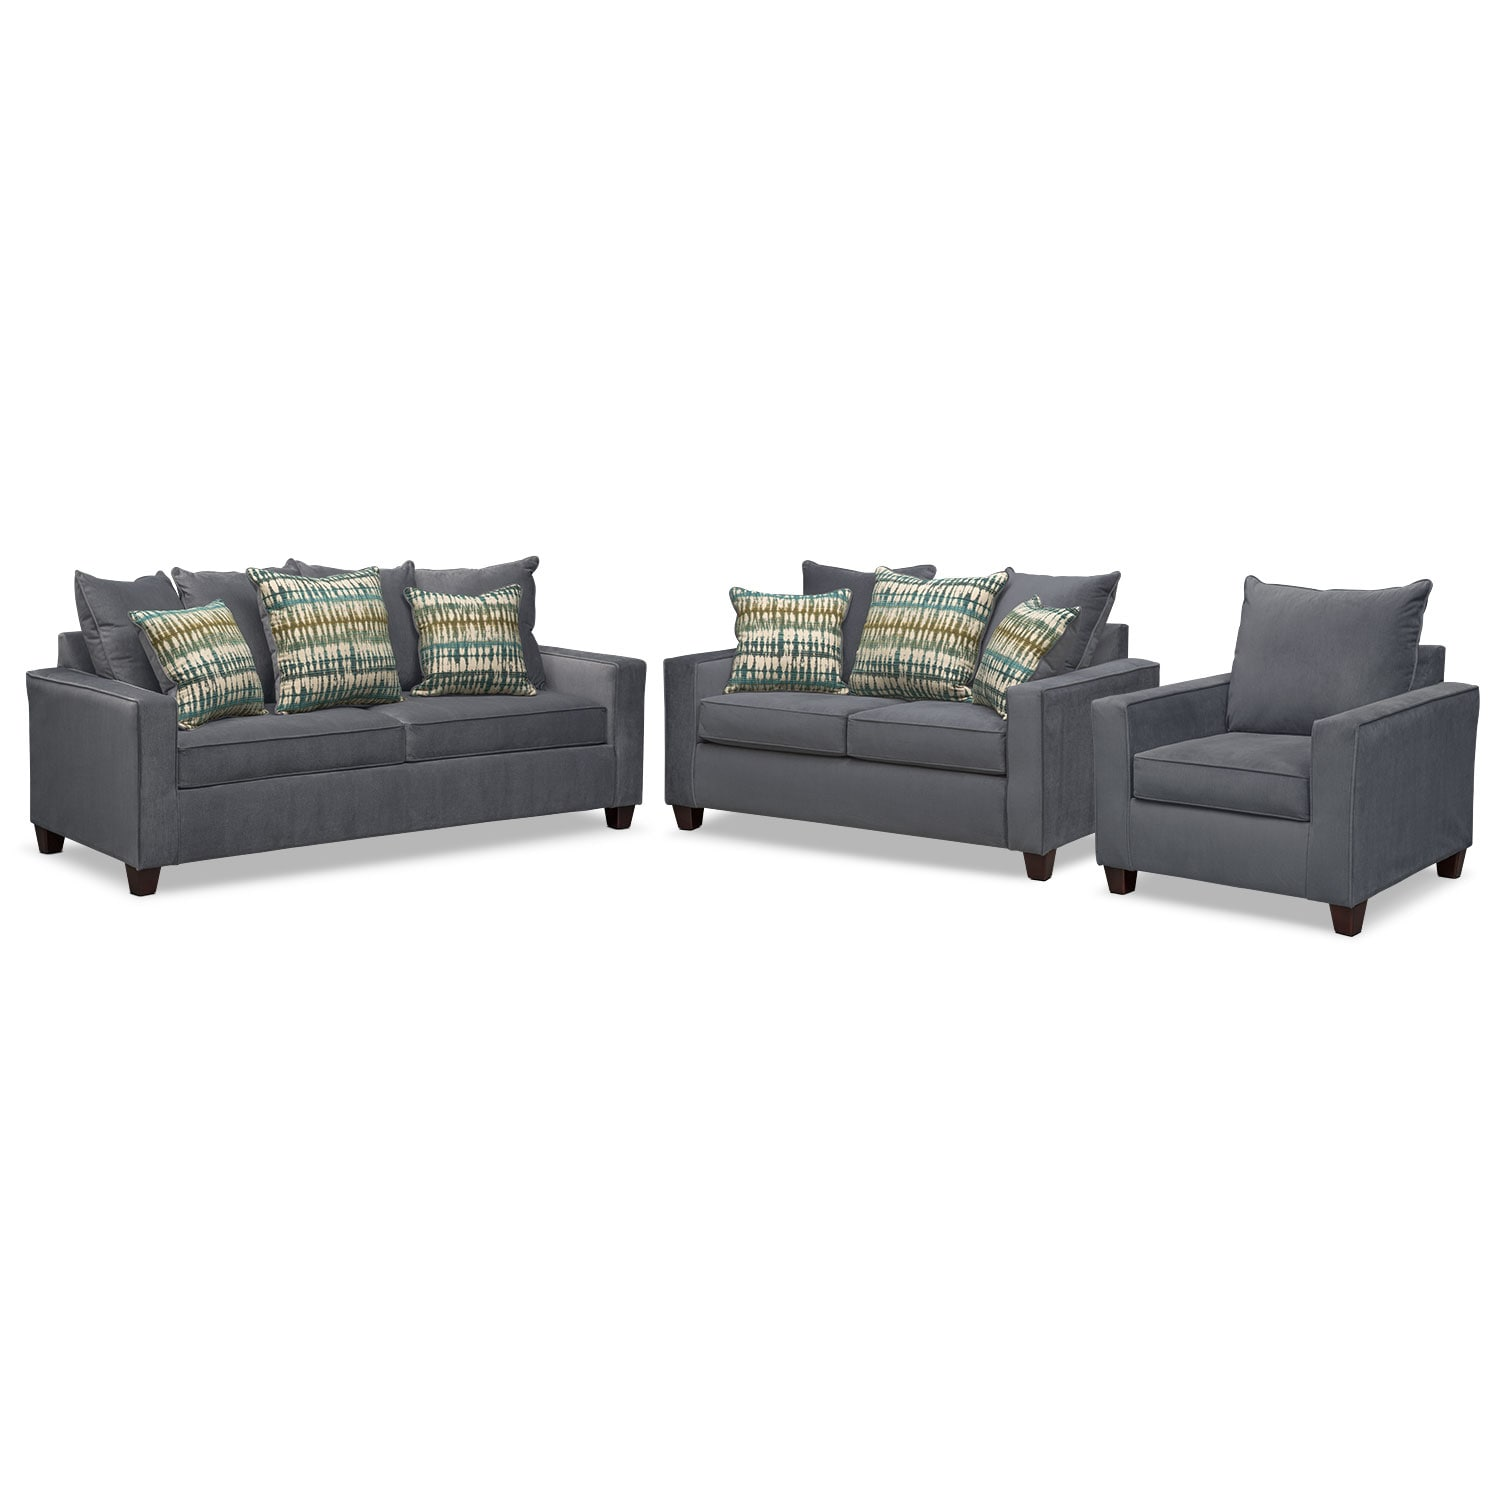 Bryden Sofa, Loveseat and Chair Set - Slate